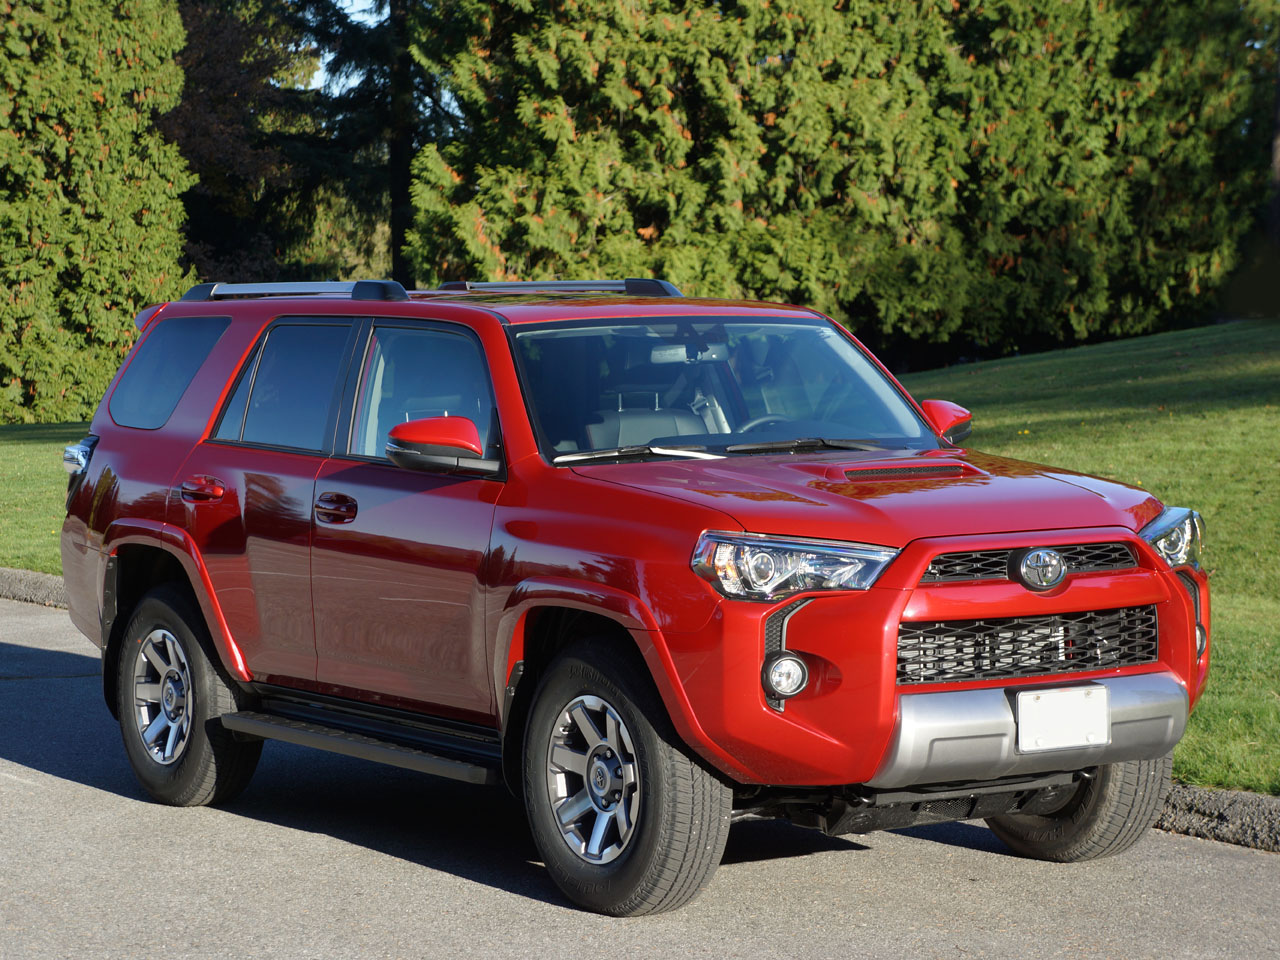 2014 Toyota 4runner Limited Road Test Review Carcostcanada Auto Transmission Wire Harness